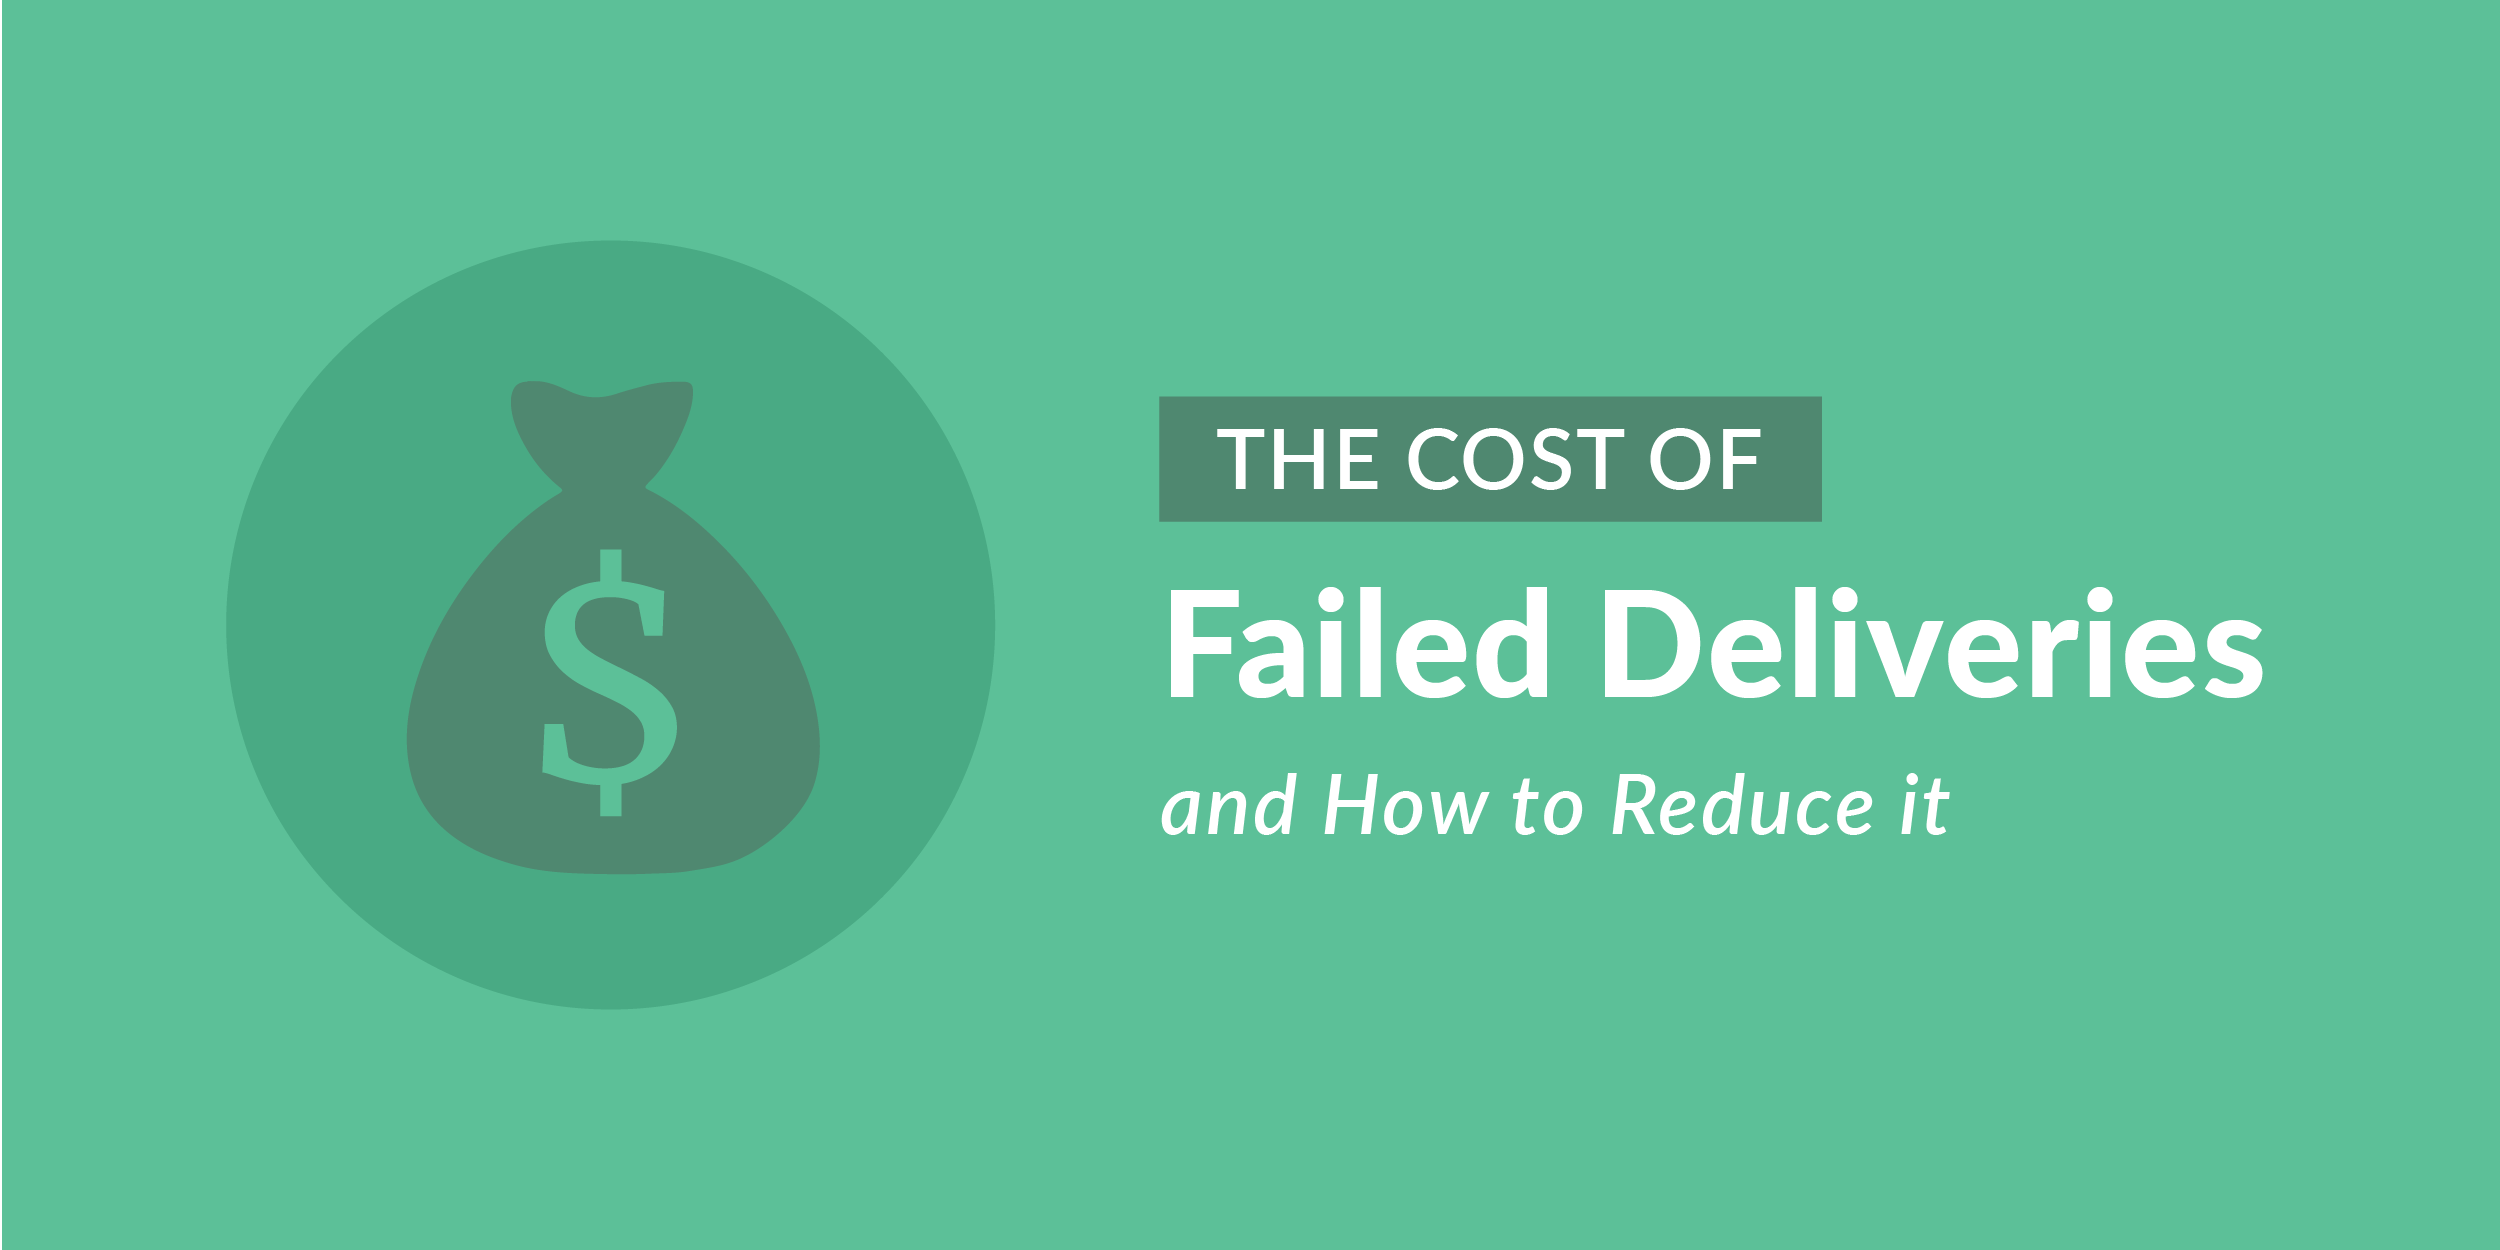 The Cost of Failed Deliveries and How to Reduce It